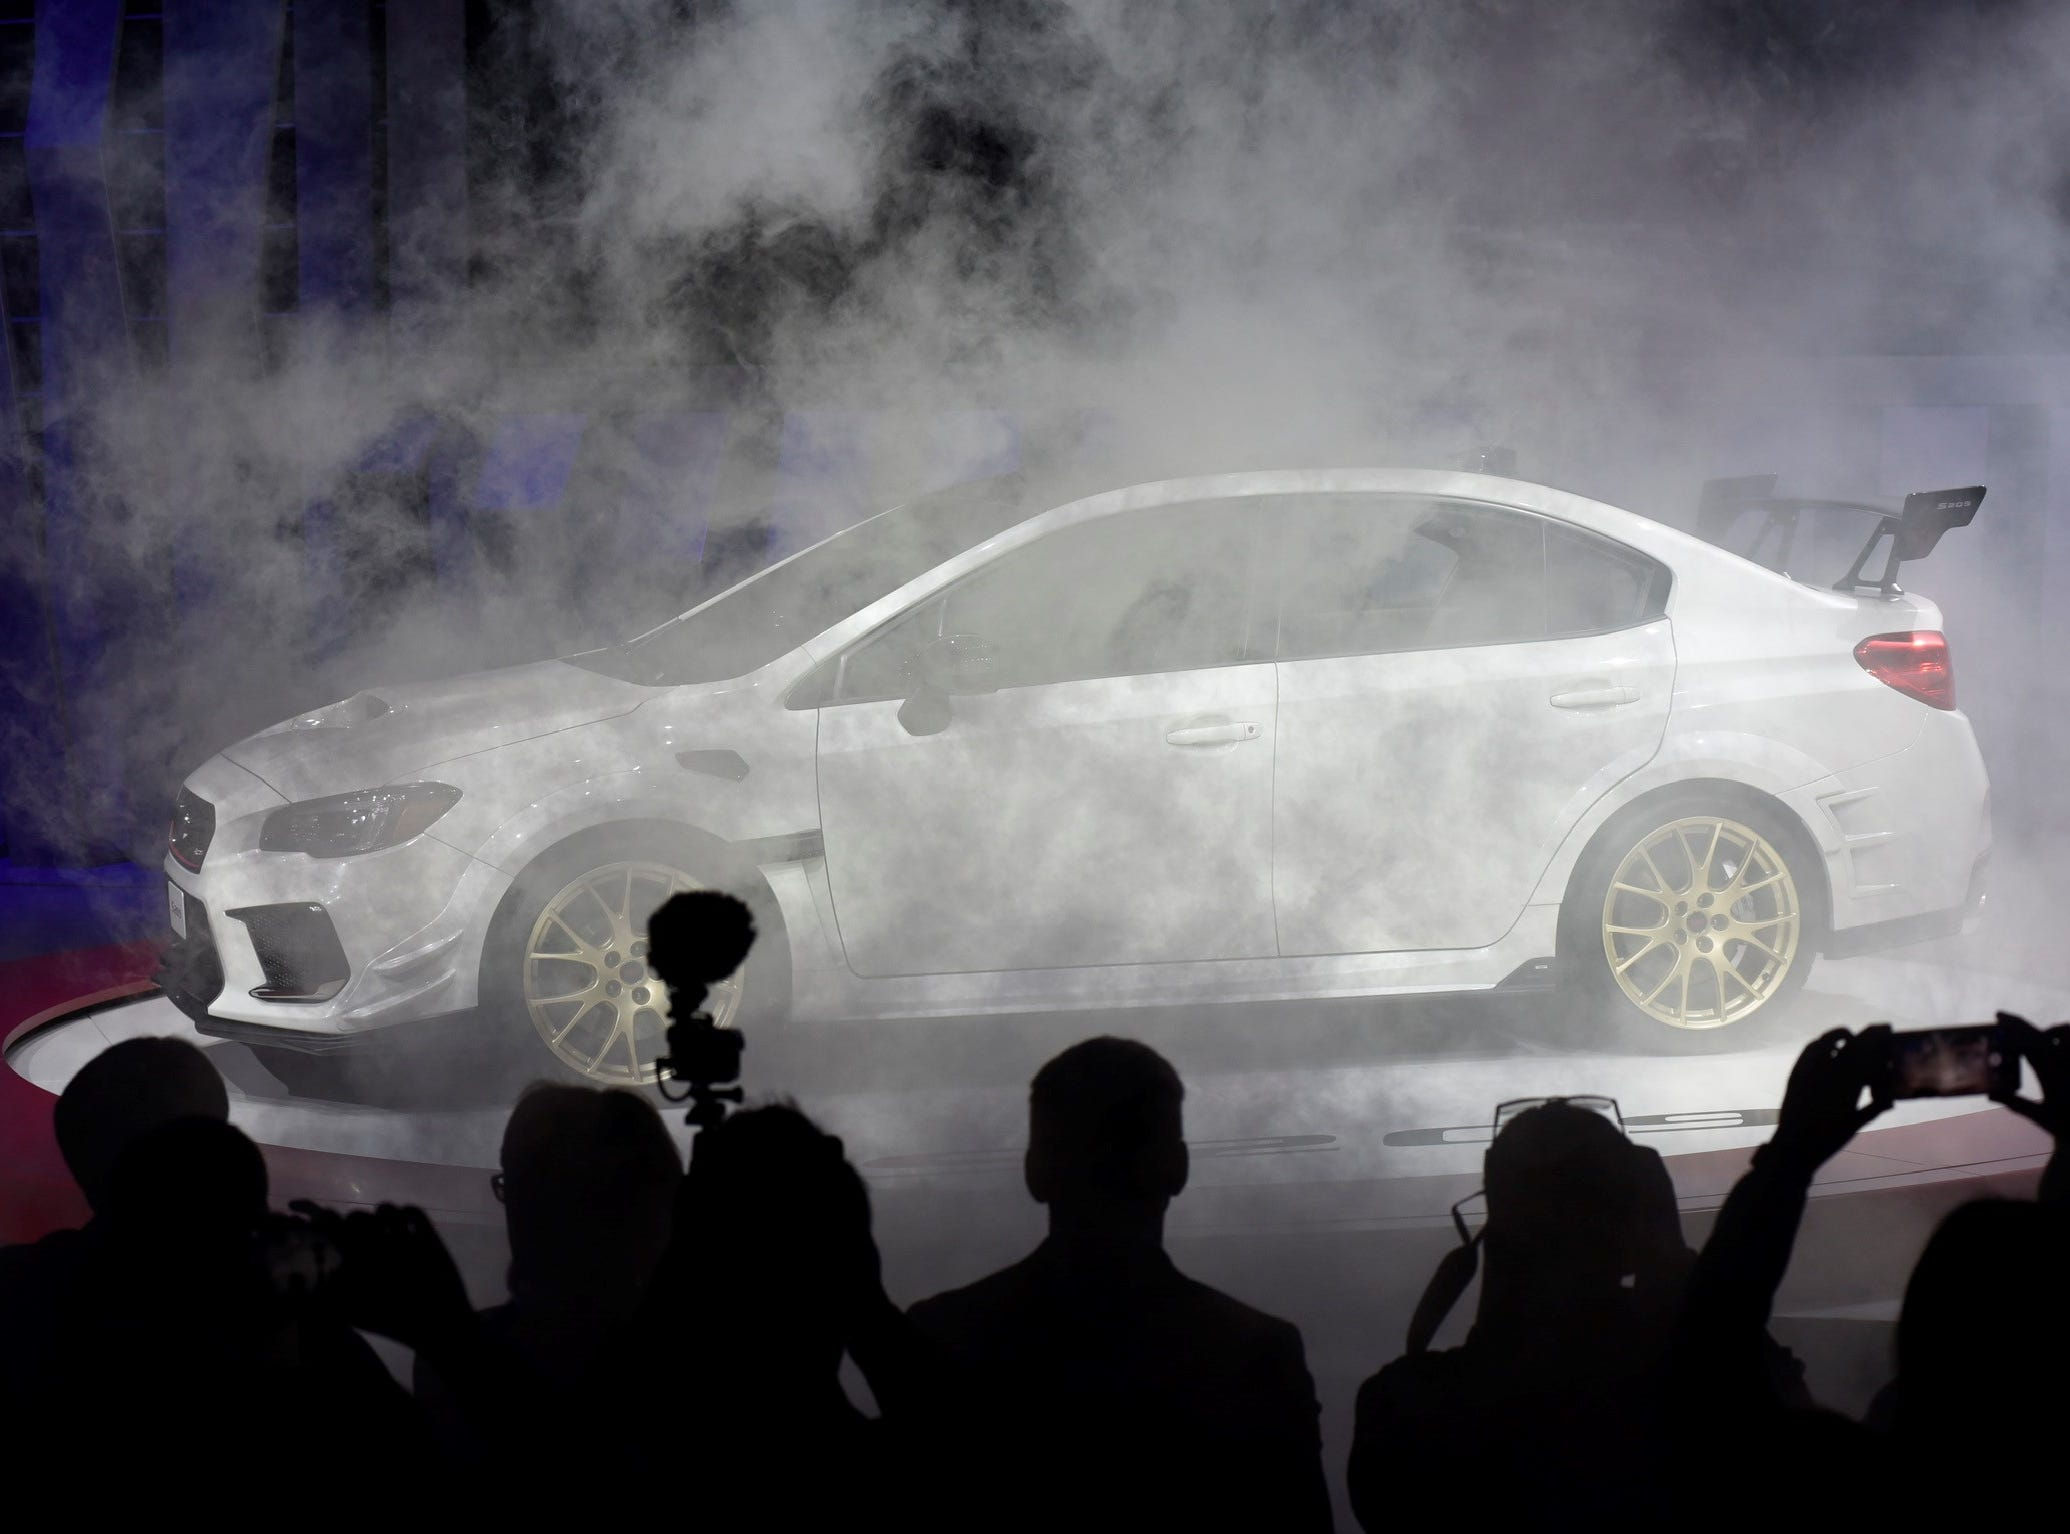 The Subaru S209 is unveiled on stage at the North American International Auto Show Monday, Jan. 14, 2019, in Detroit. The car is now available for the first time in America.